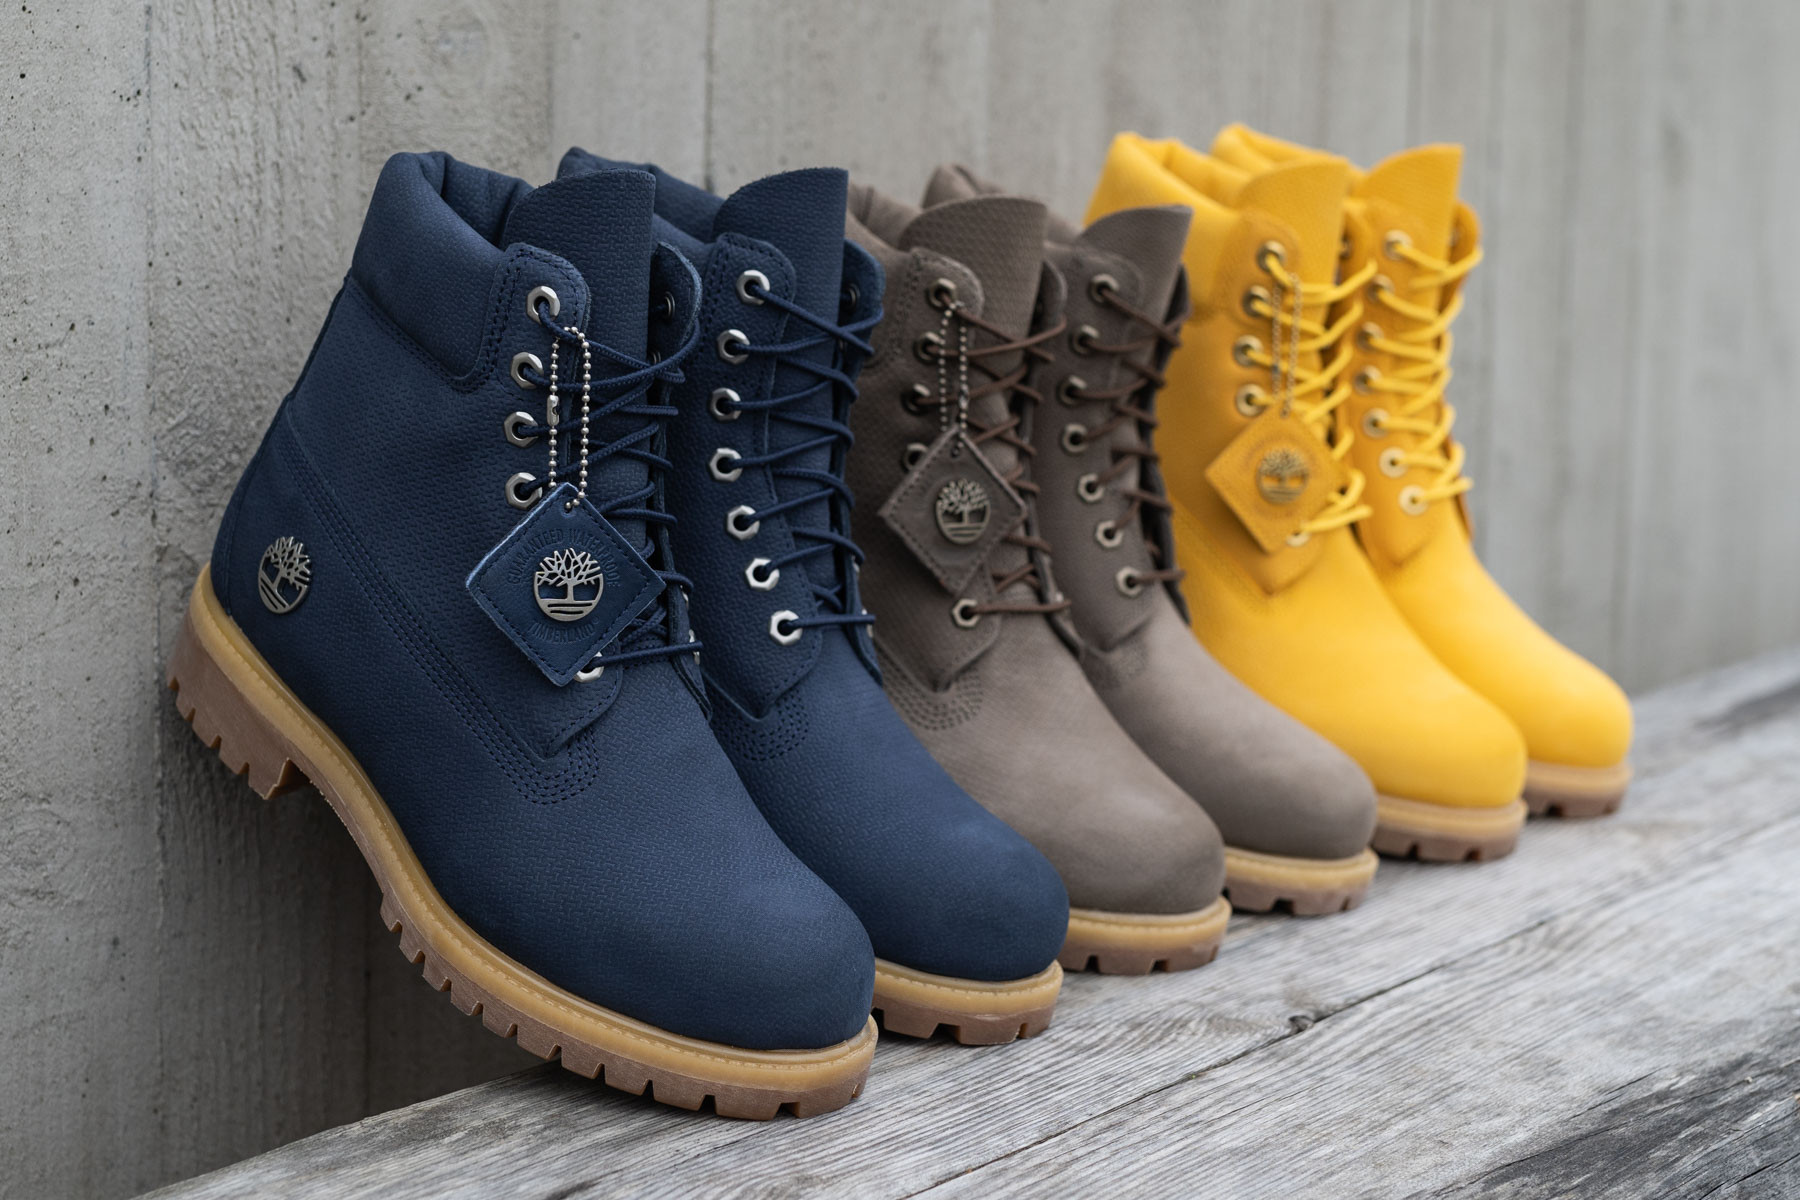 Timberland 6 Inch Boots Sneaker.no